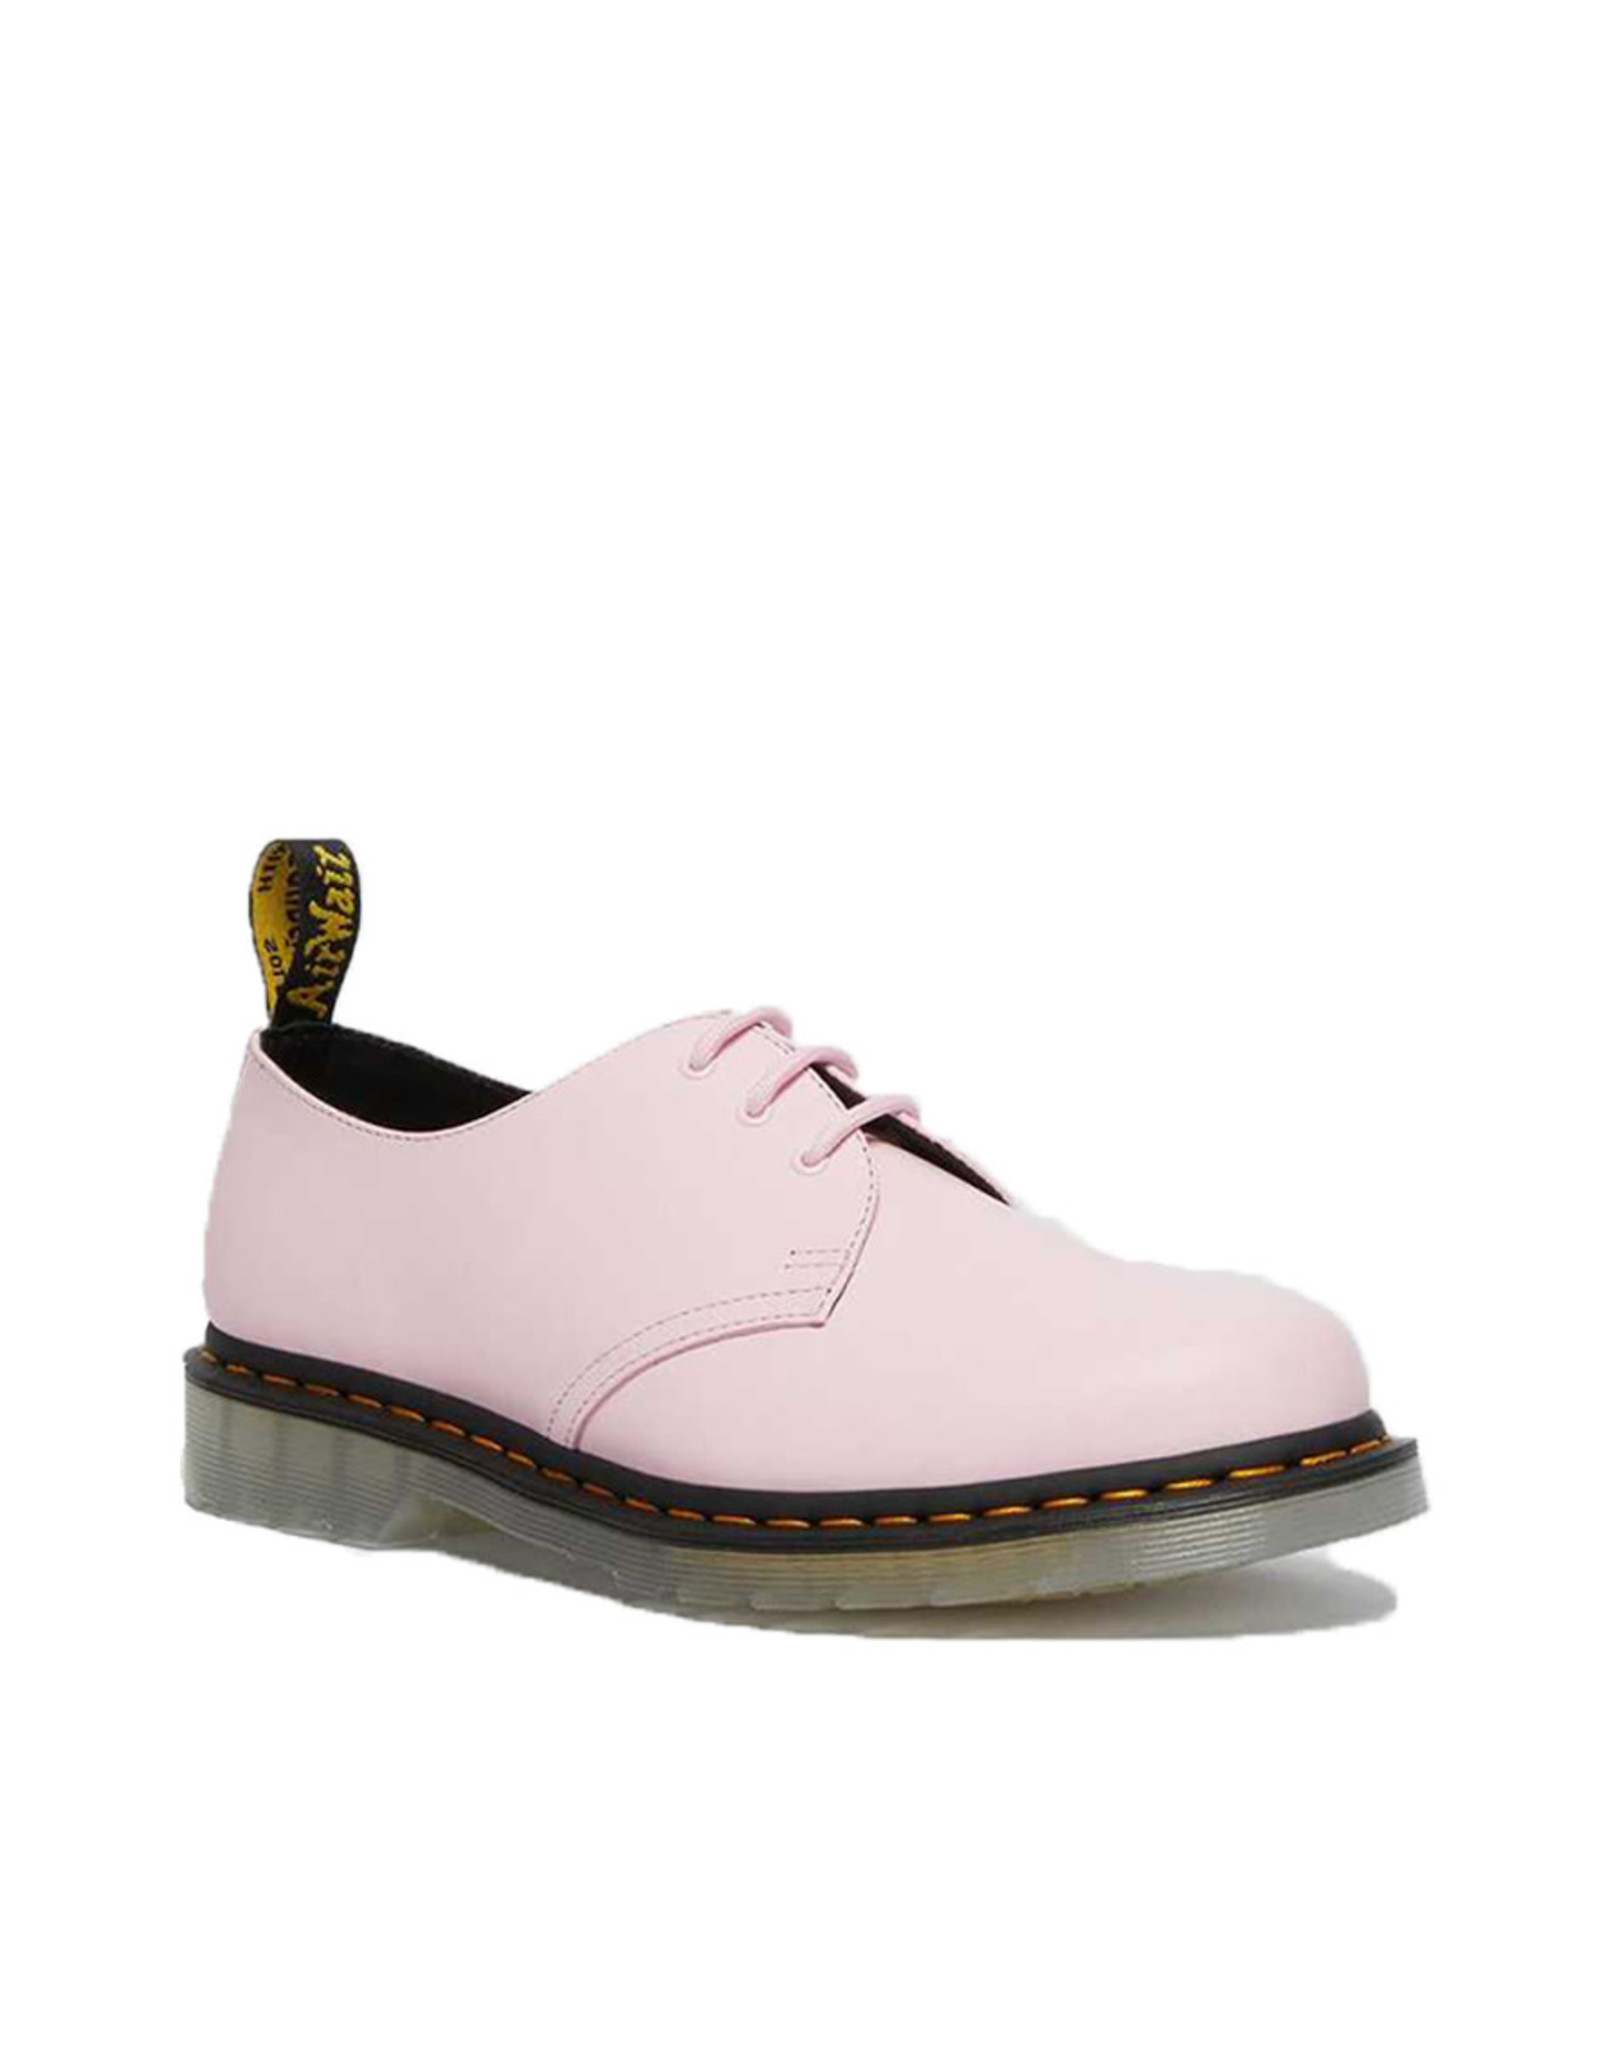 DR. MARTENS 1461 ICED PALE PINK SMOOTH 301IPP-R26651322